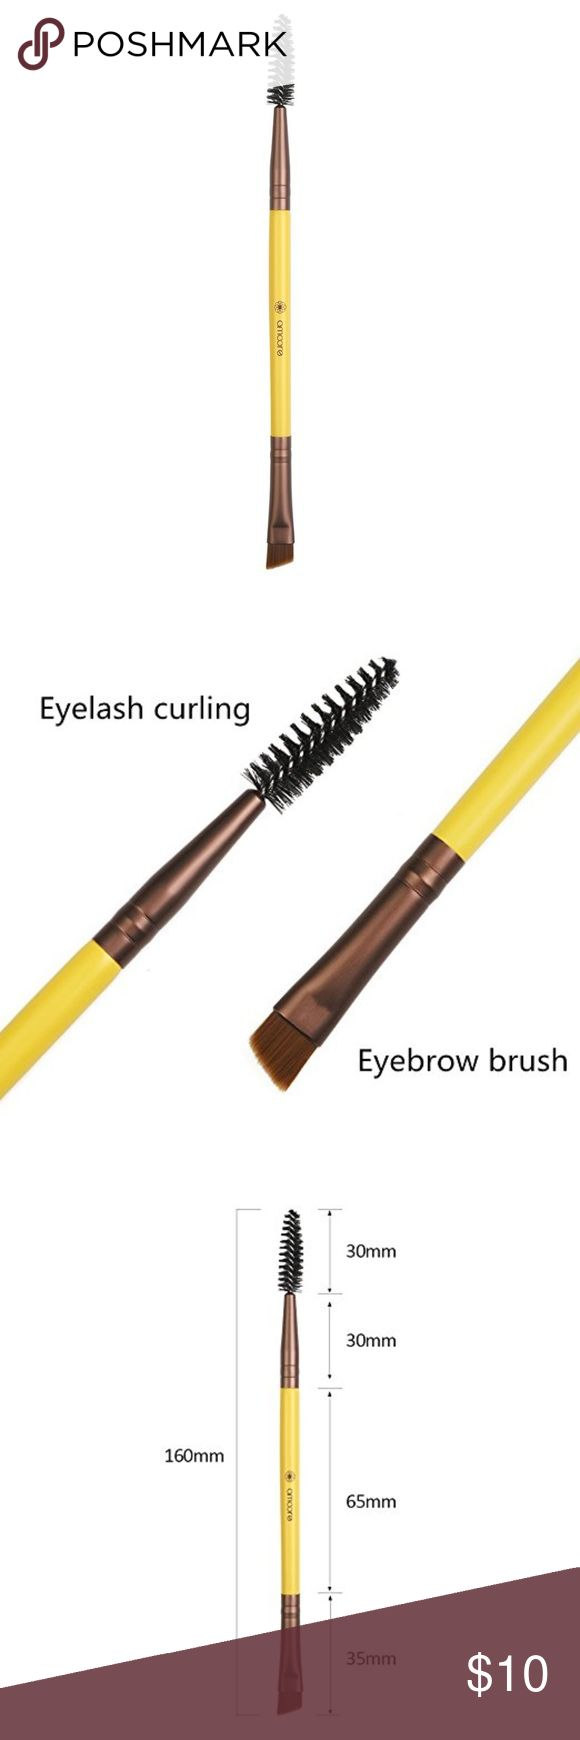 Duo Lash & Angled Eyebrow Brush Create light, feathery strokes on the brow area with a soft hand to mimic fine hairs. Comb through brows before or after makeup application to separate, define and smooth. The Dual ended angled brow brush and spoolie brush is easy to hold, easy to use, easy to clean. The angled brush is perfect for shaping and filling in your brows with precise, defined strokes while allowing for even product/color distribution. Made with synthetic hair for a natural softness…